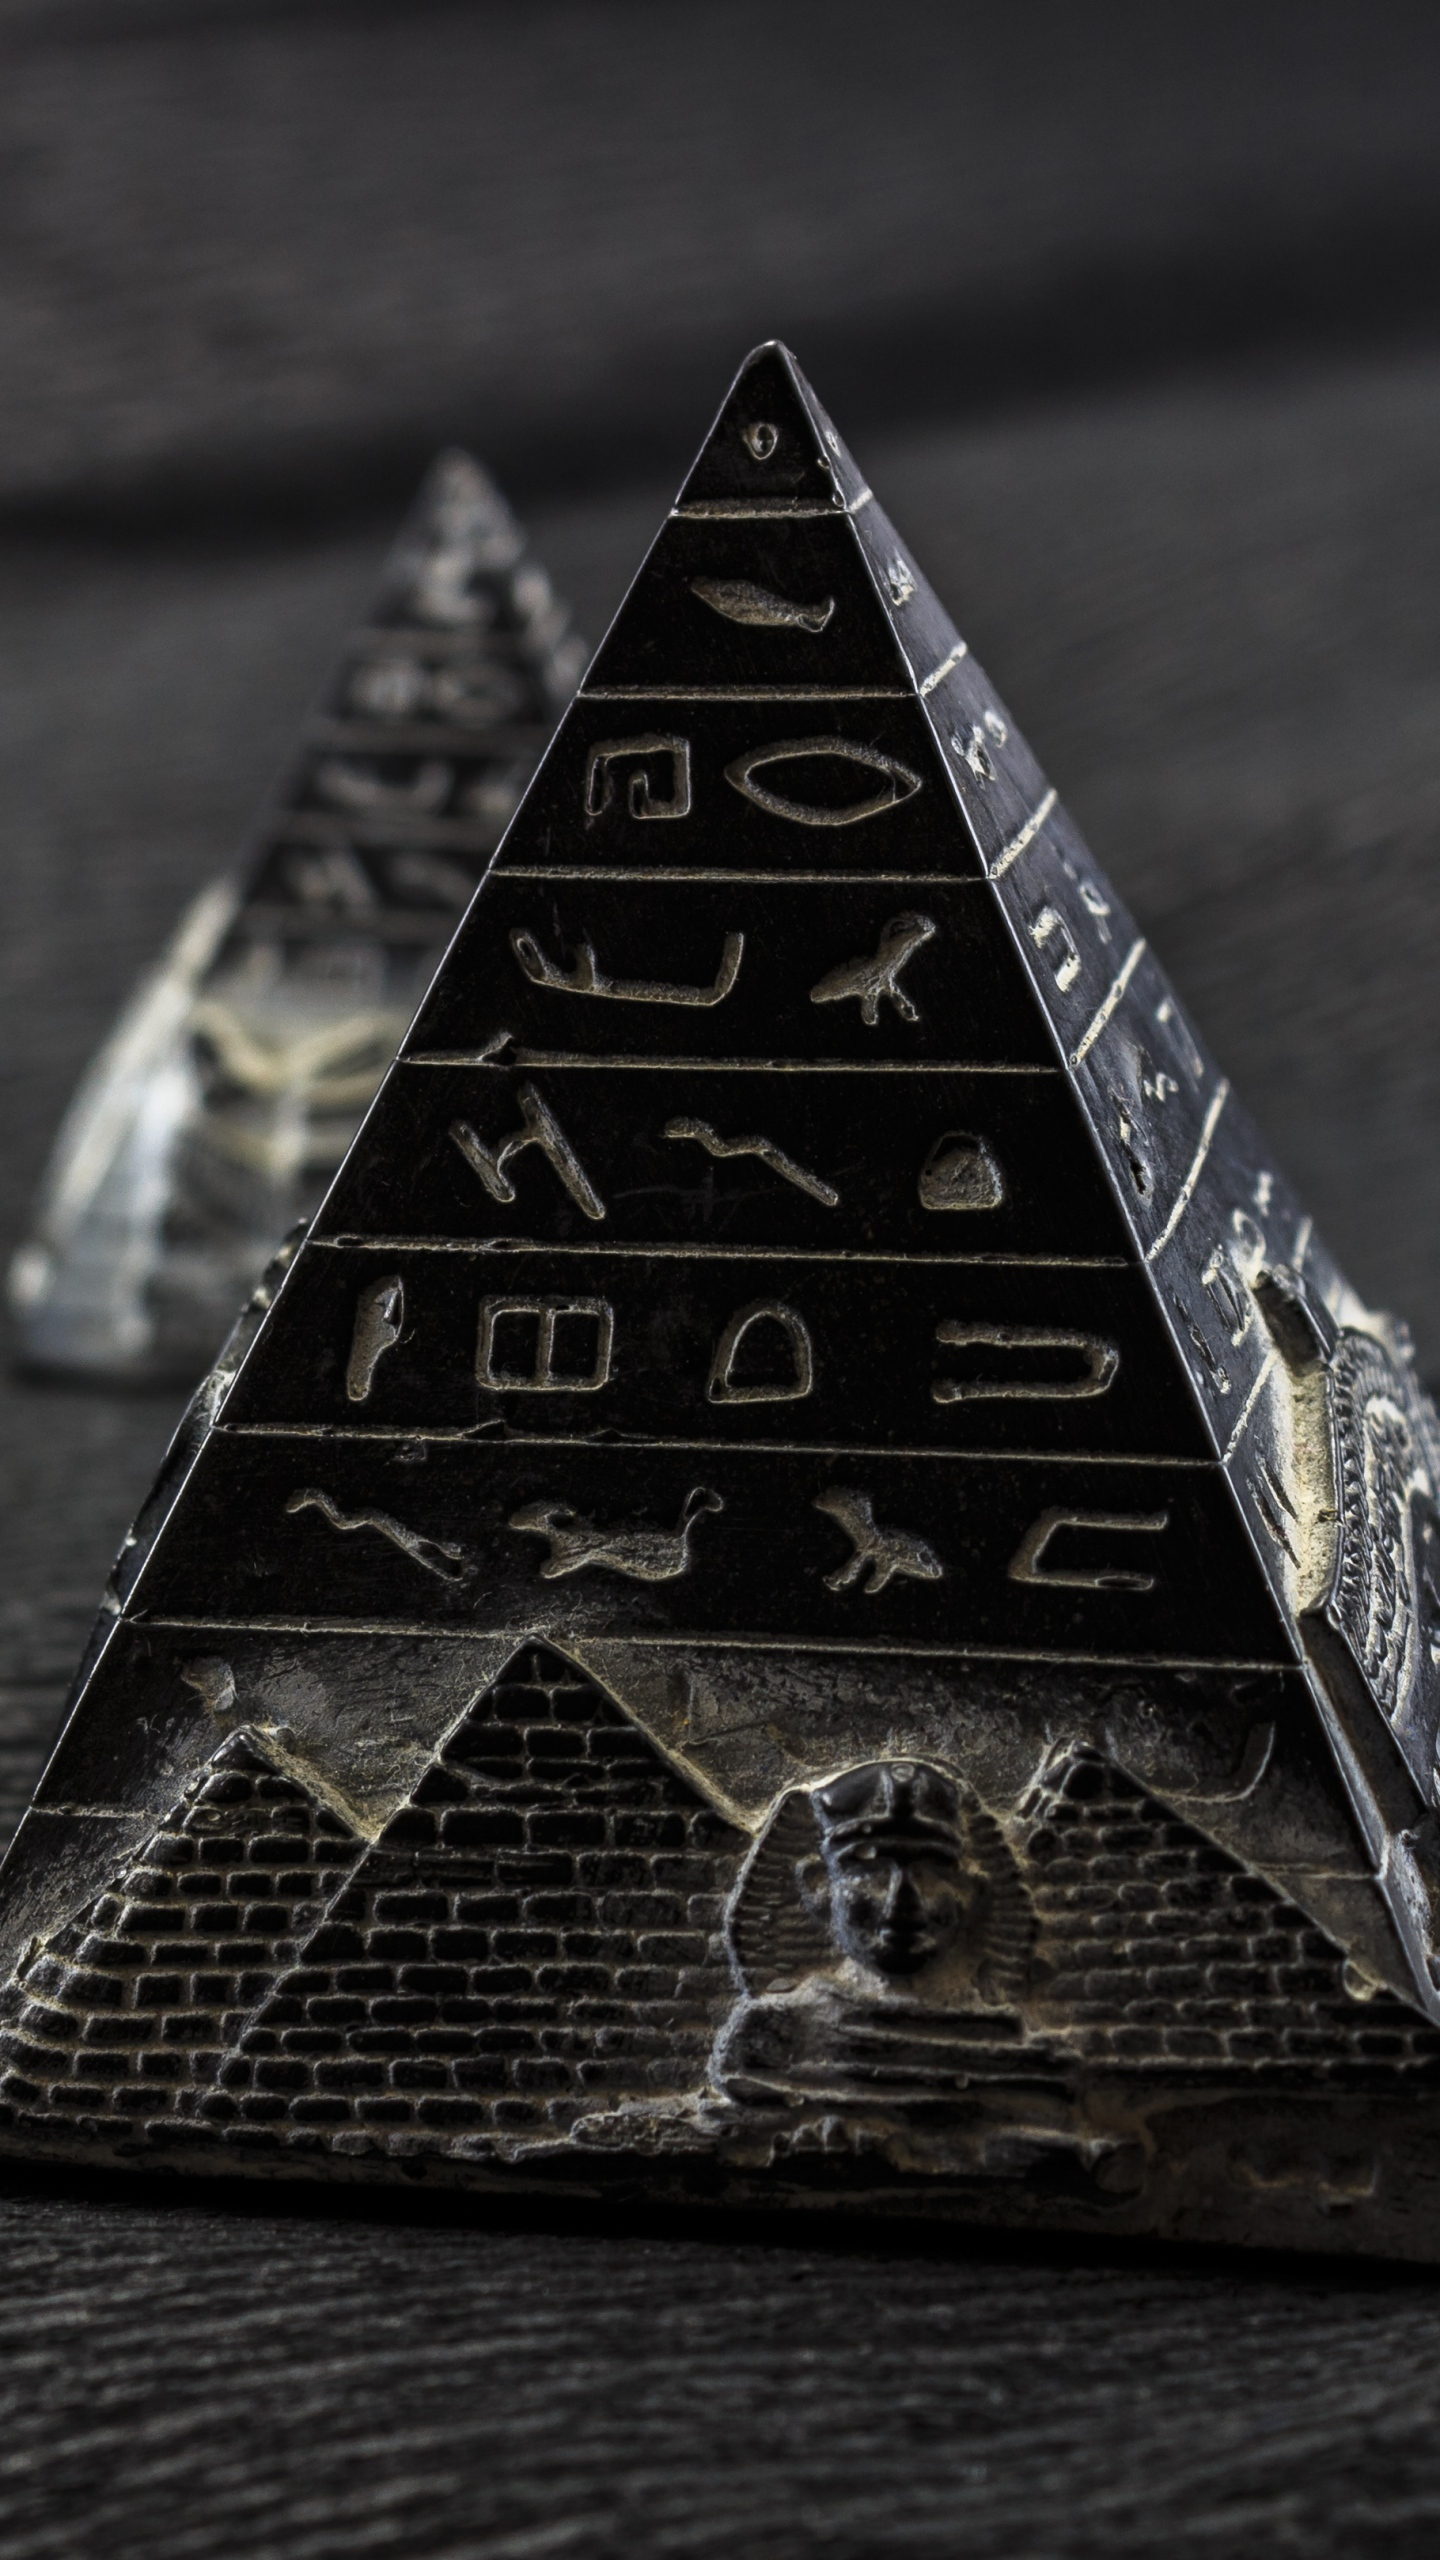 Download Black Pyramid Wallpaper Gallery